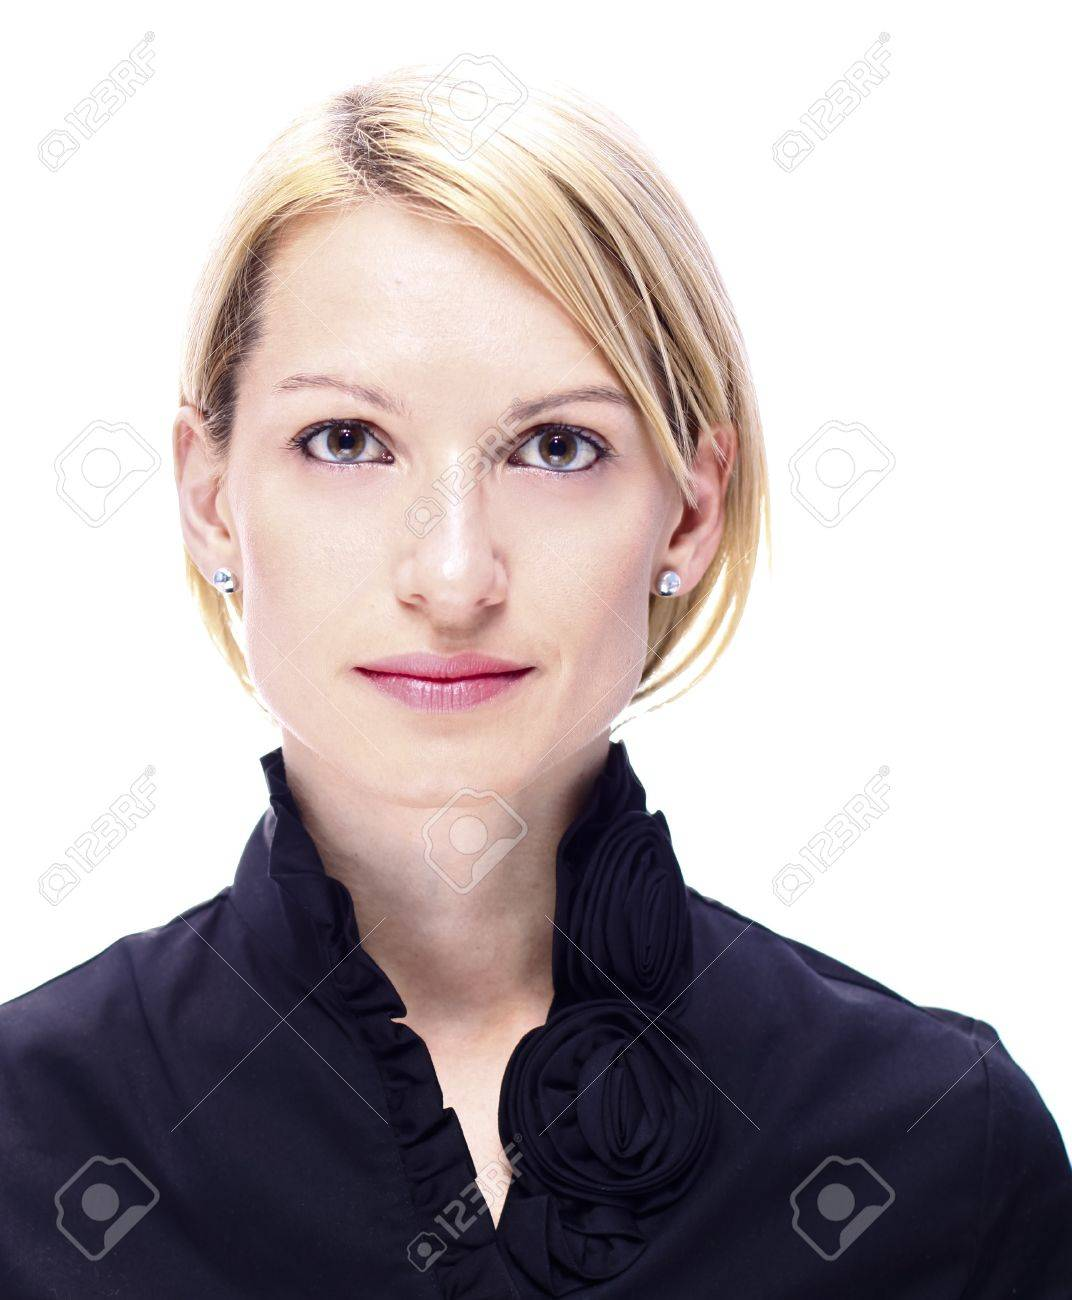 Portrait of a successful,  elegant, atractive, business woman wearing black blouse. Stock Photo - 9150734